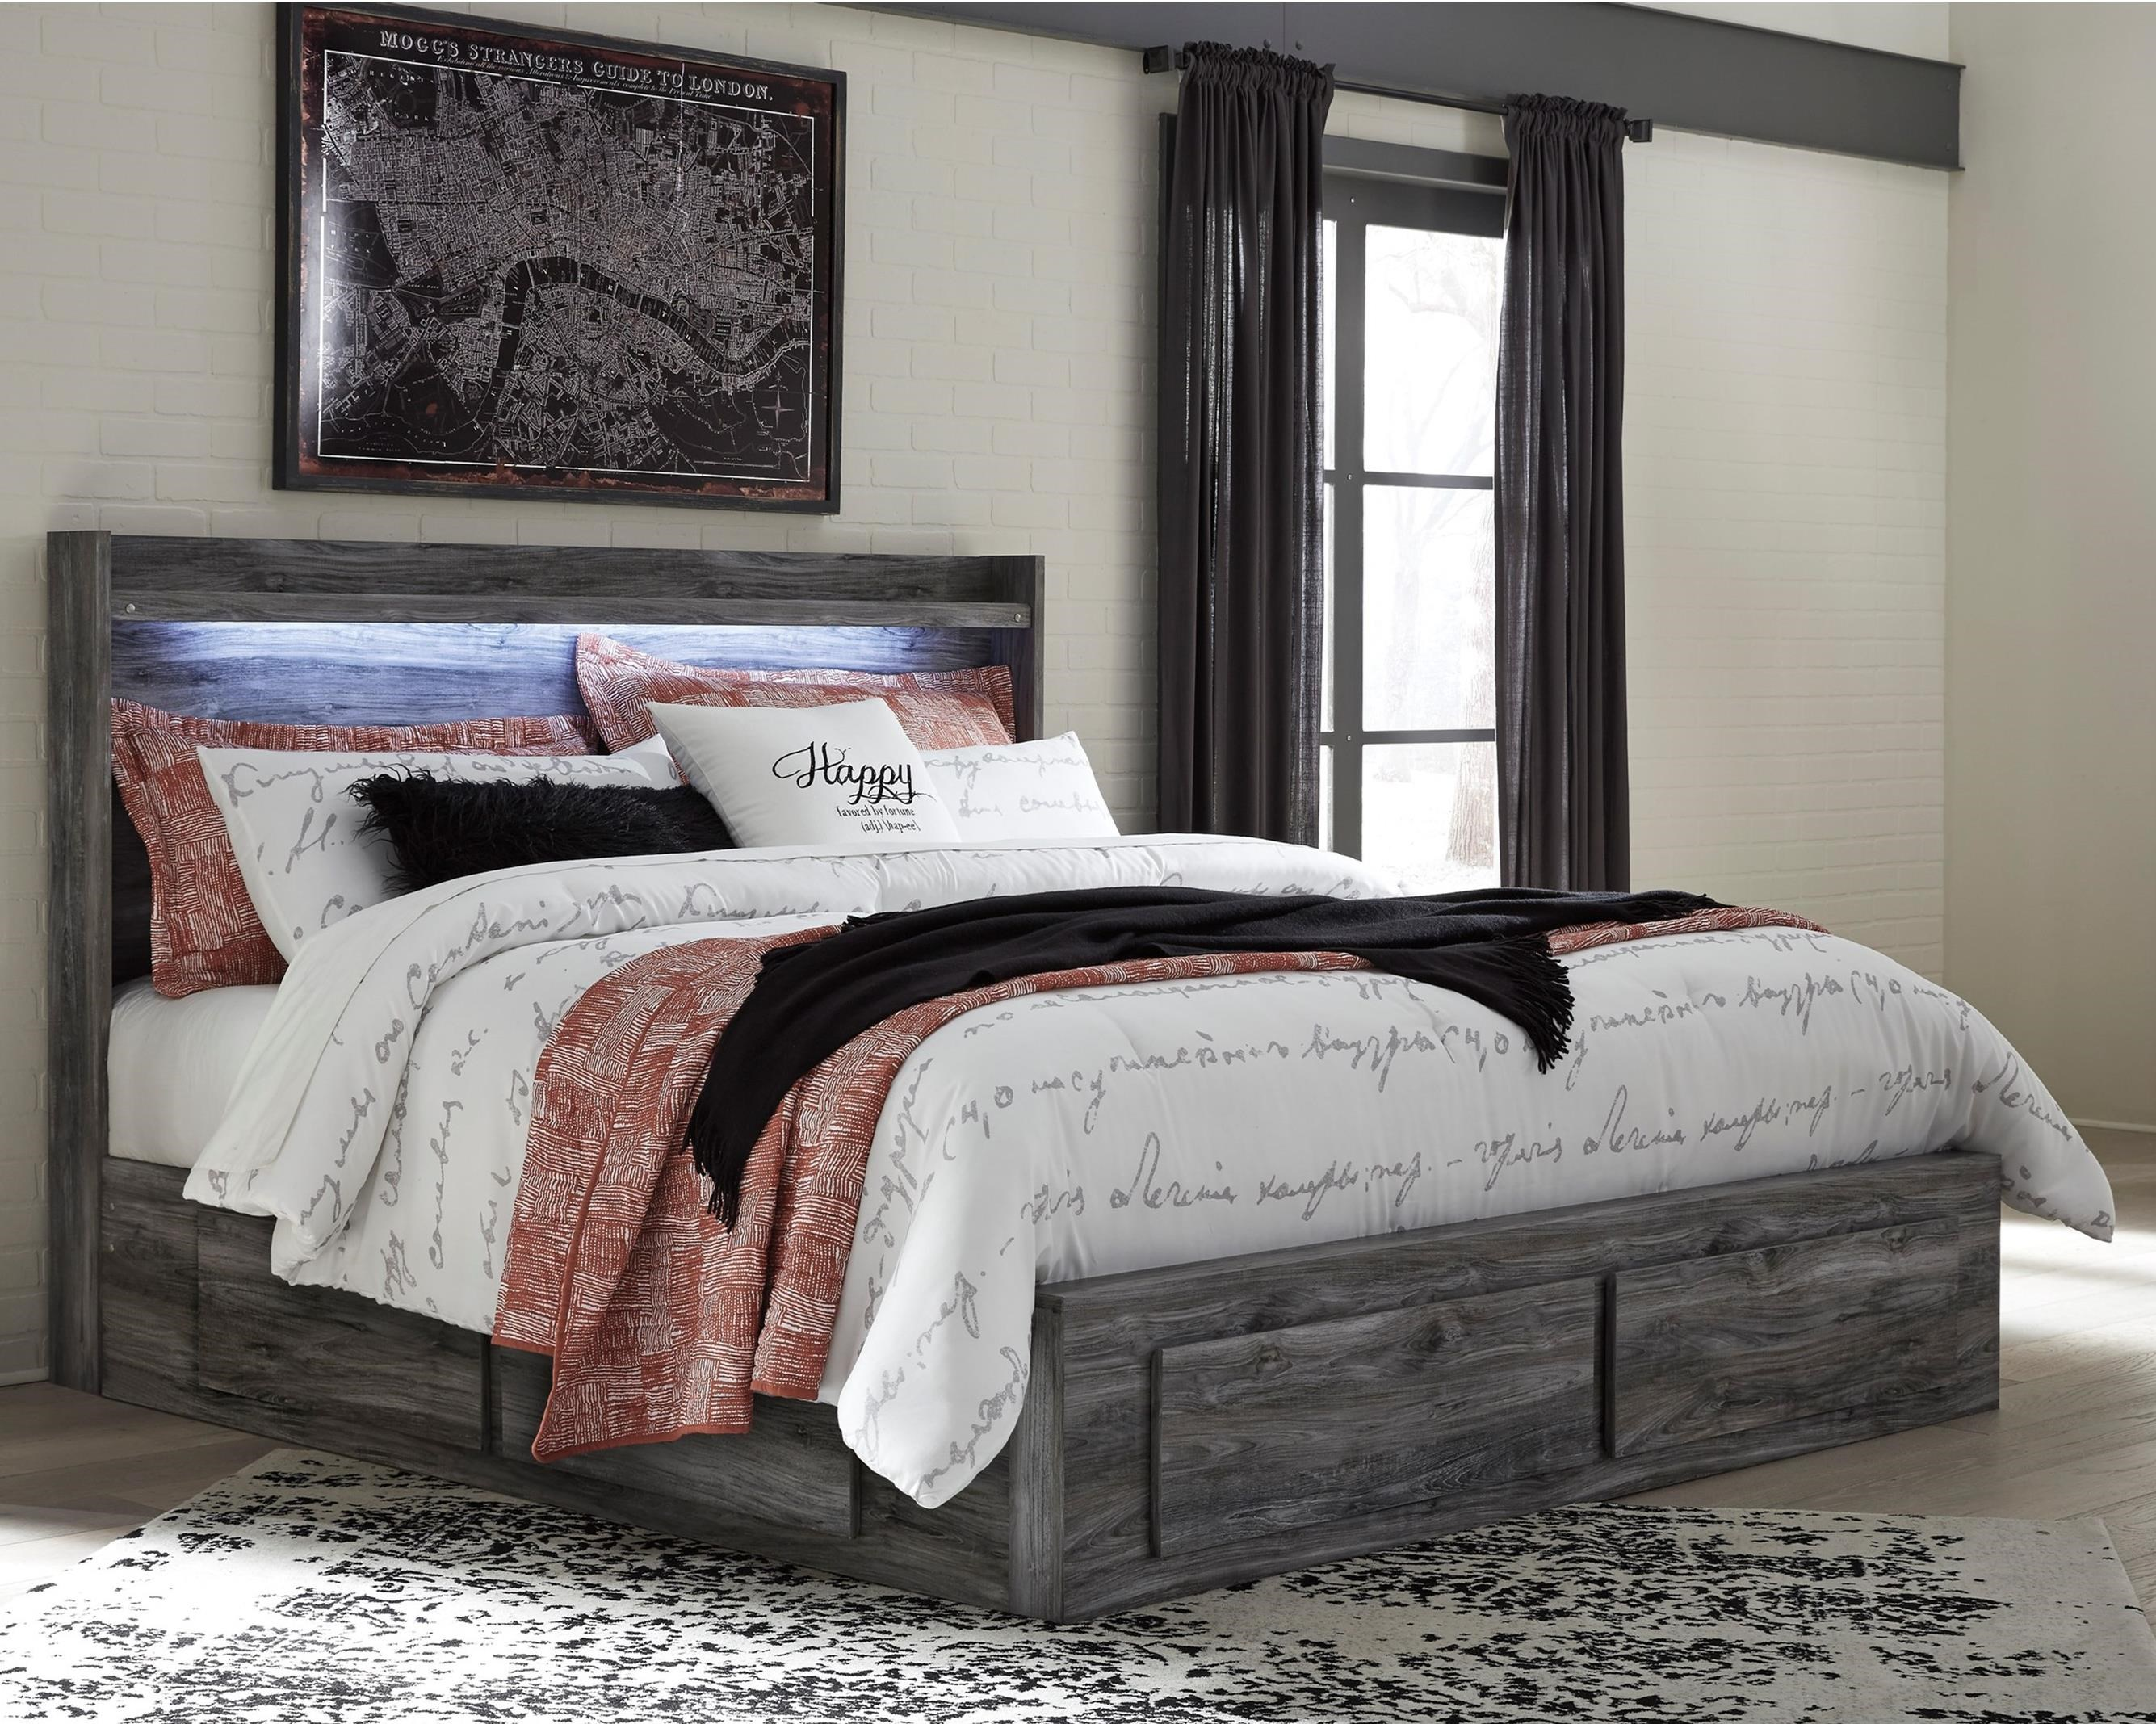 Signature design by ashley baystorm king storage bed with 6 drawers royal furniture platform for Bedroom set with drawers under bed